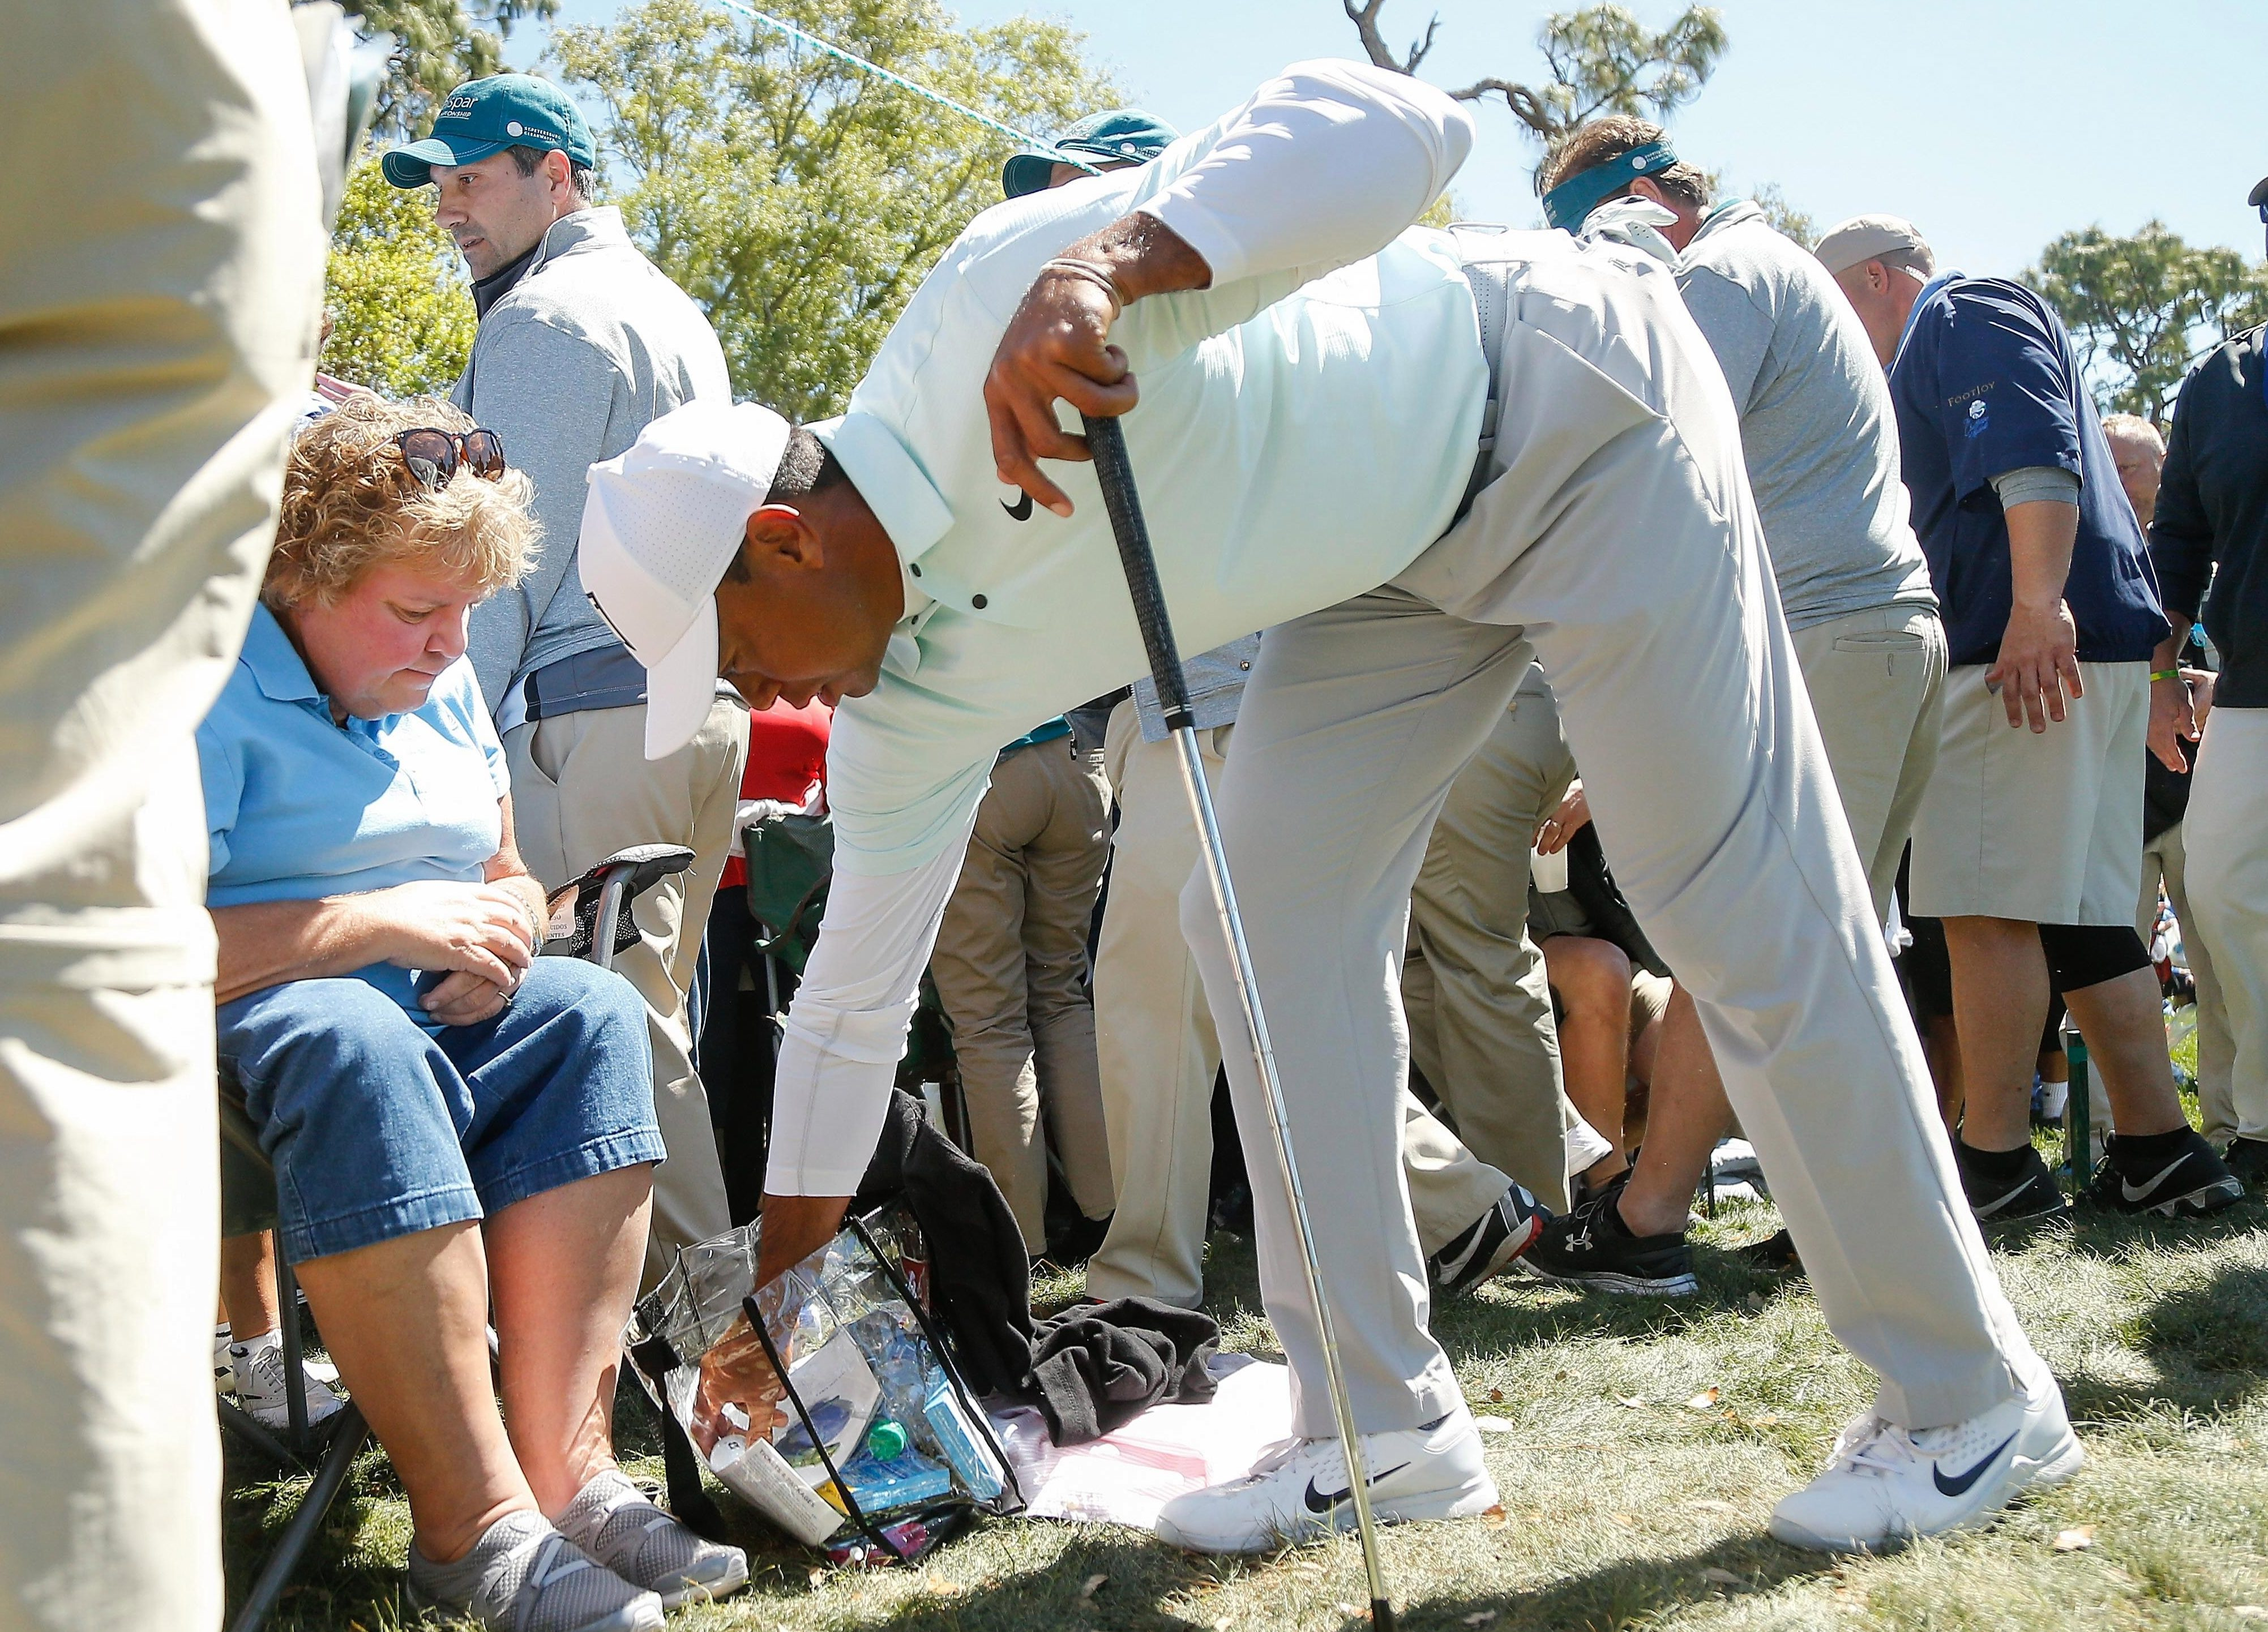 The female spectator did not move as Tiger Woods picked his ball out of her hold-all